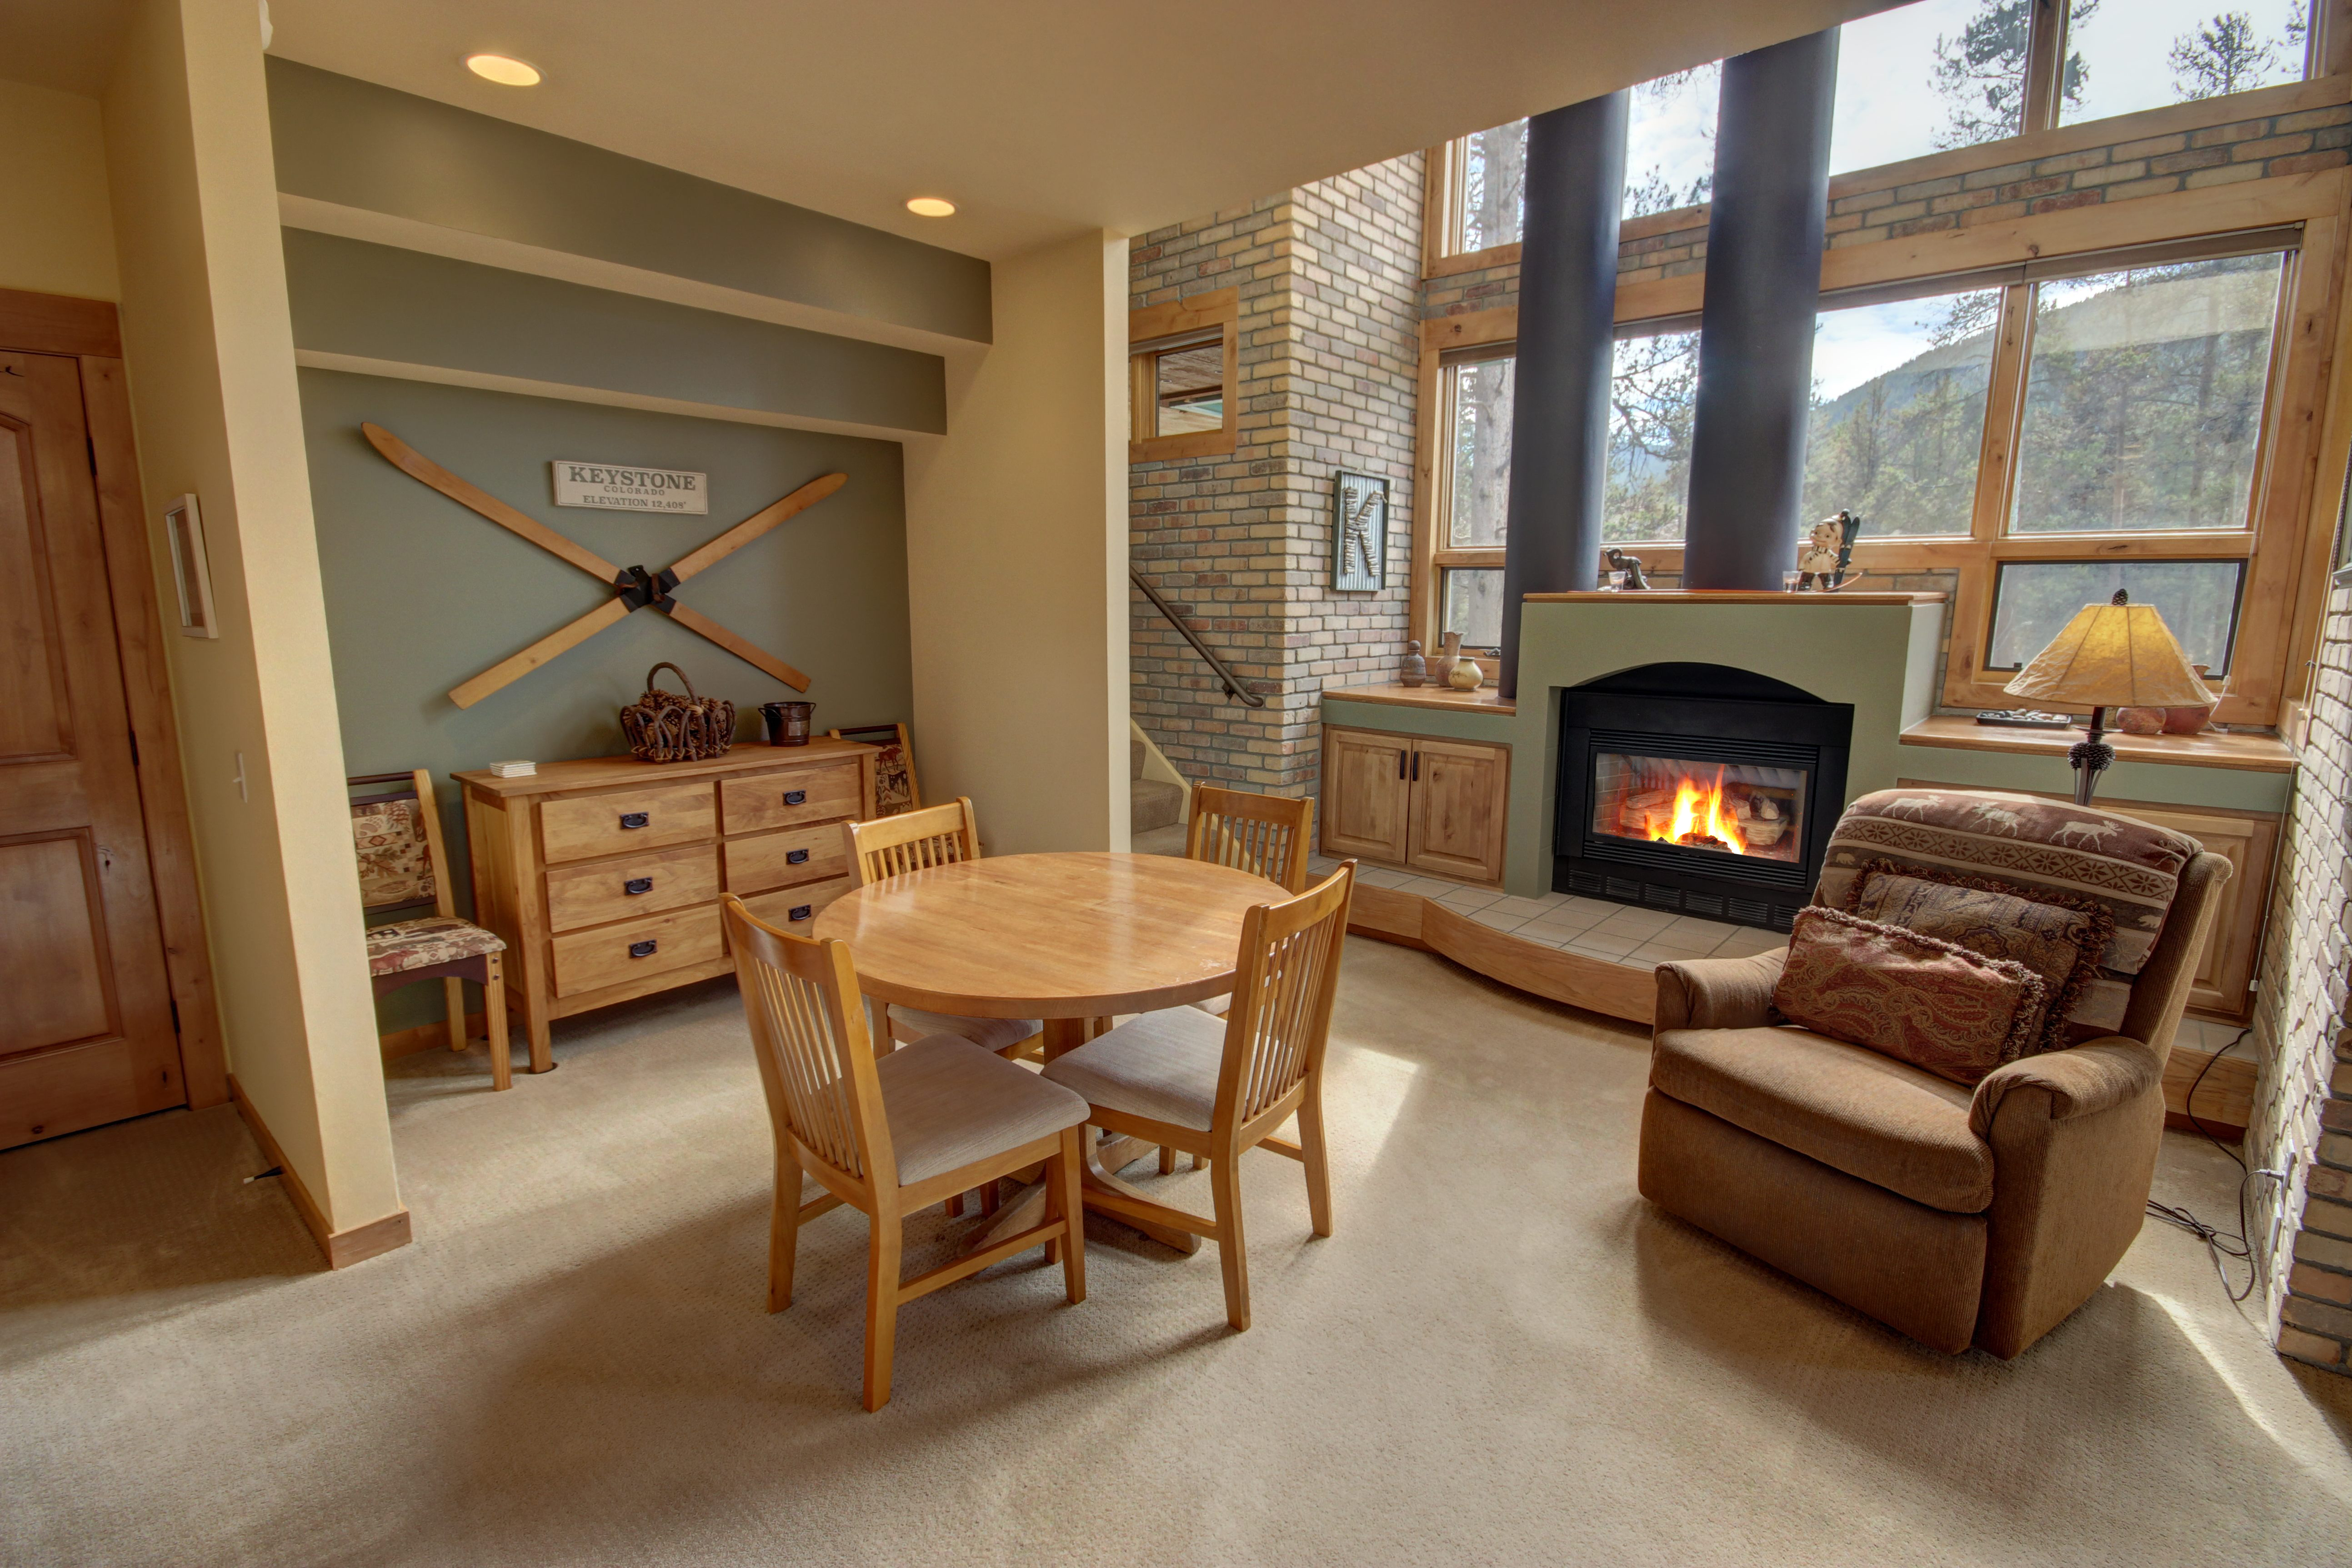 Living room with dining and cozy fire